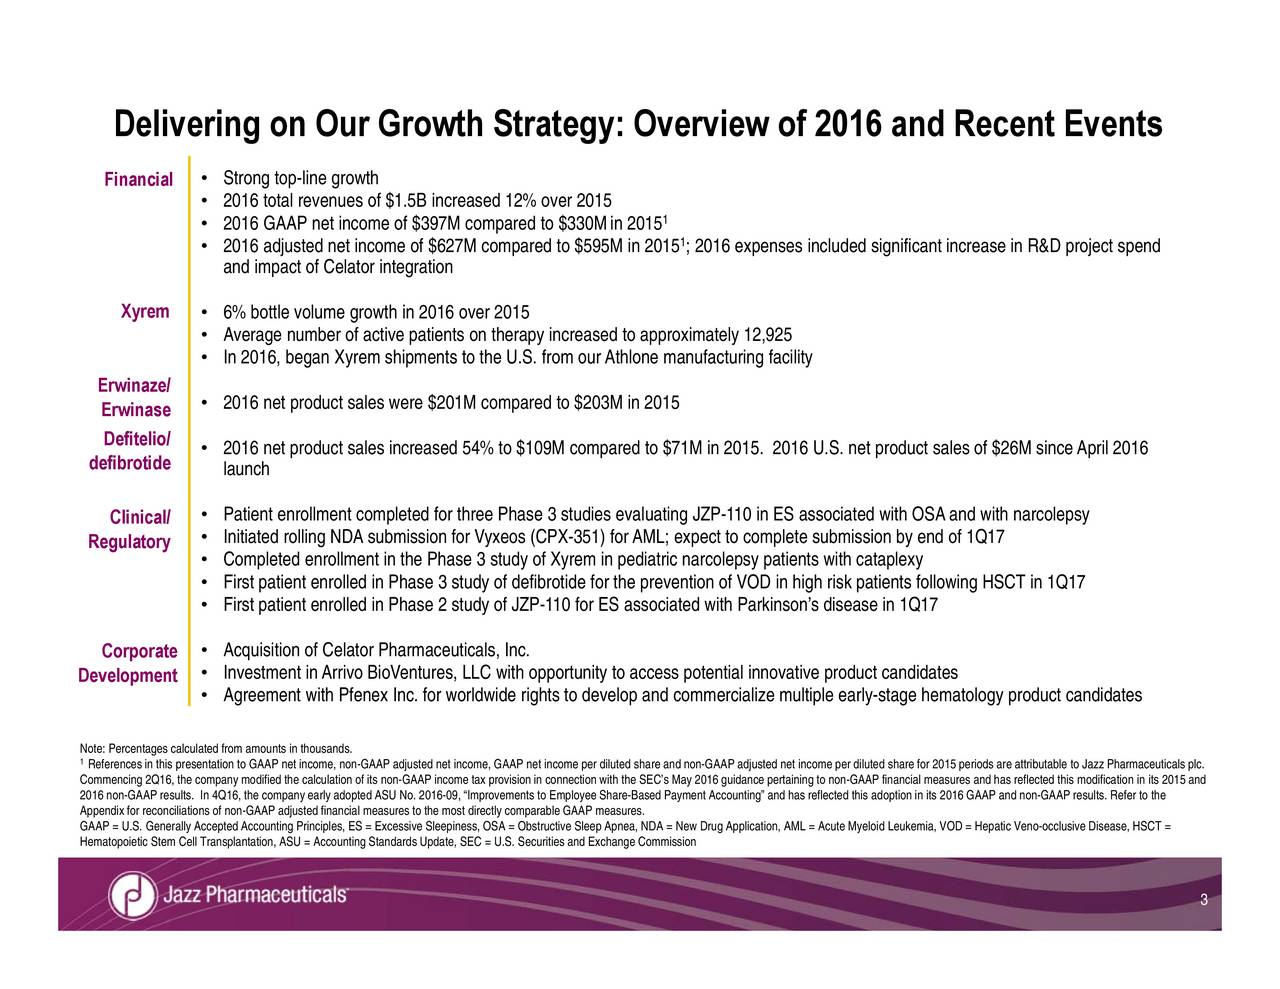 zz Pharmaceuticals plc. odand has reflected this modification in its 2015 and D = Hepatic Veno-occlusive Disease, HSCT = s 2016 GAAP and non-GAAP results. Refer to the with OSAand with narcolepsy product sales of $26M sinceApril 2016 submission by end of 1Q17 high risk patients following HSCT in 1Q17 ing and has reflected this adoption in it P adjusteApplication, AML = Acute Myeloid Leukemia, VO guidance pertaining to non-GAAP financial measures colepswith Parkinsons disease in 1Q17 1; 2016 expenses included significant increase in R&D project spcommercialize multiple early-stage hematology product candidates 1 approximately 12,925 uating JZP-110 in ES associated r AML; expect to complete compared to $71M in 2015. 2016 U.S. neto access potenive Sleep Apnea, NDA = New Drugtes from ourAthlone manufacturing facility coto Employee Share-Based Payment Account defibrotide for the prevAAP net income per diluted share and non-GAA herapy increased to study of Xyrem in pediatric nar directly compar study of JZP-110 for ES associated $627M compared to $595M in 2015 ssive Sleepiness, OSA = Obstruct andards Update, SEC = U.S. Securities and Exchange Commission its non-GAAP income tax provision in eausted financial measures to the mostements net income, non-GAAP adjusted net income, G fied the calculation of Accounting Principles, ES = Exce Str2012ot2-ilnevij6ststvfttivanon3nofroafictiarpvaeon0tndMreledteaDieutoAgreement with Pfenex Inc. for worldwide rights to develop and DeliverFinancialr Growth Strategy: OverviewDefitelio/nClinical/Events Erwinaze/sedefibrotideRegulatory Corporate References in this presentation to GAAP DevelopmentoteCom20ApenHematopoietic Stem Cell Transplantation, ASU = Accounting St